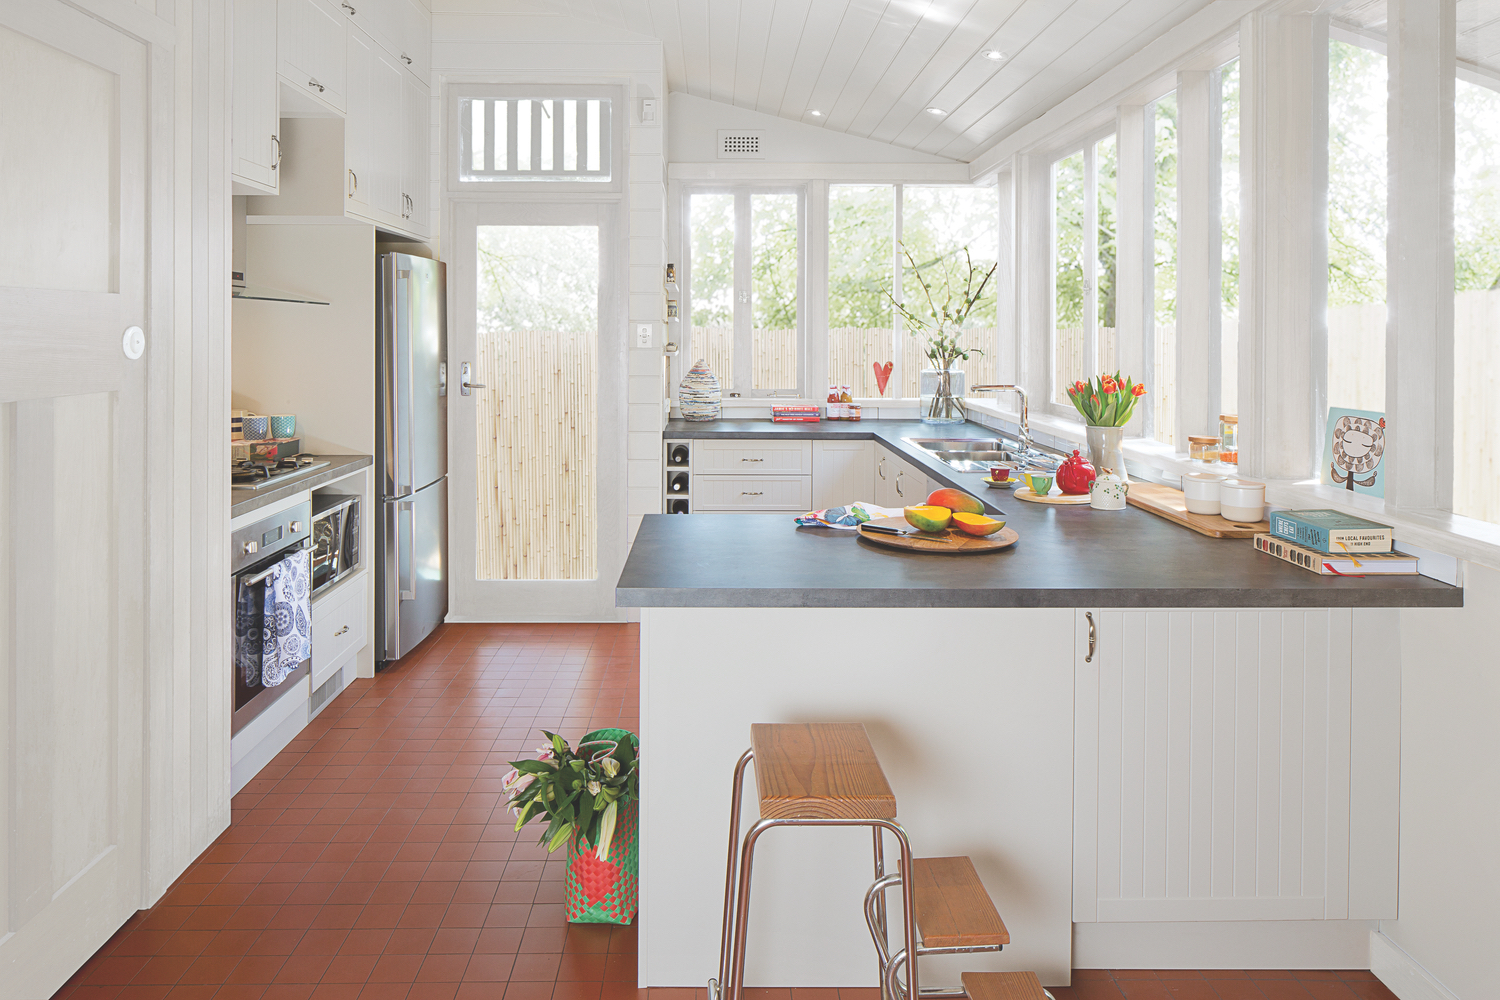 Light and Airy  kitchen inspiration and ideas  kaboodle